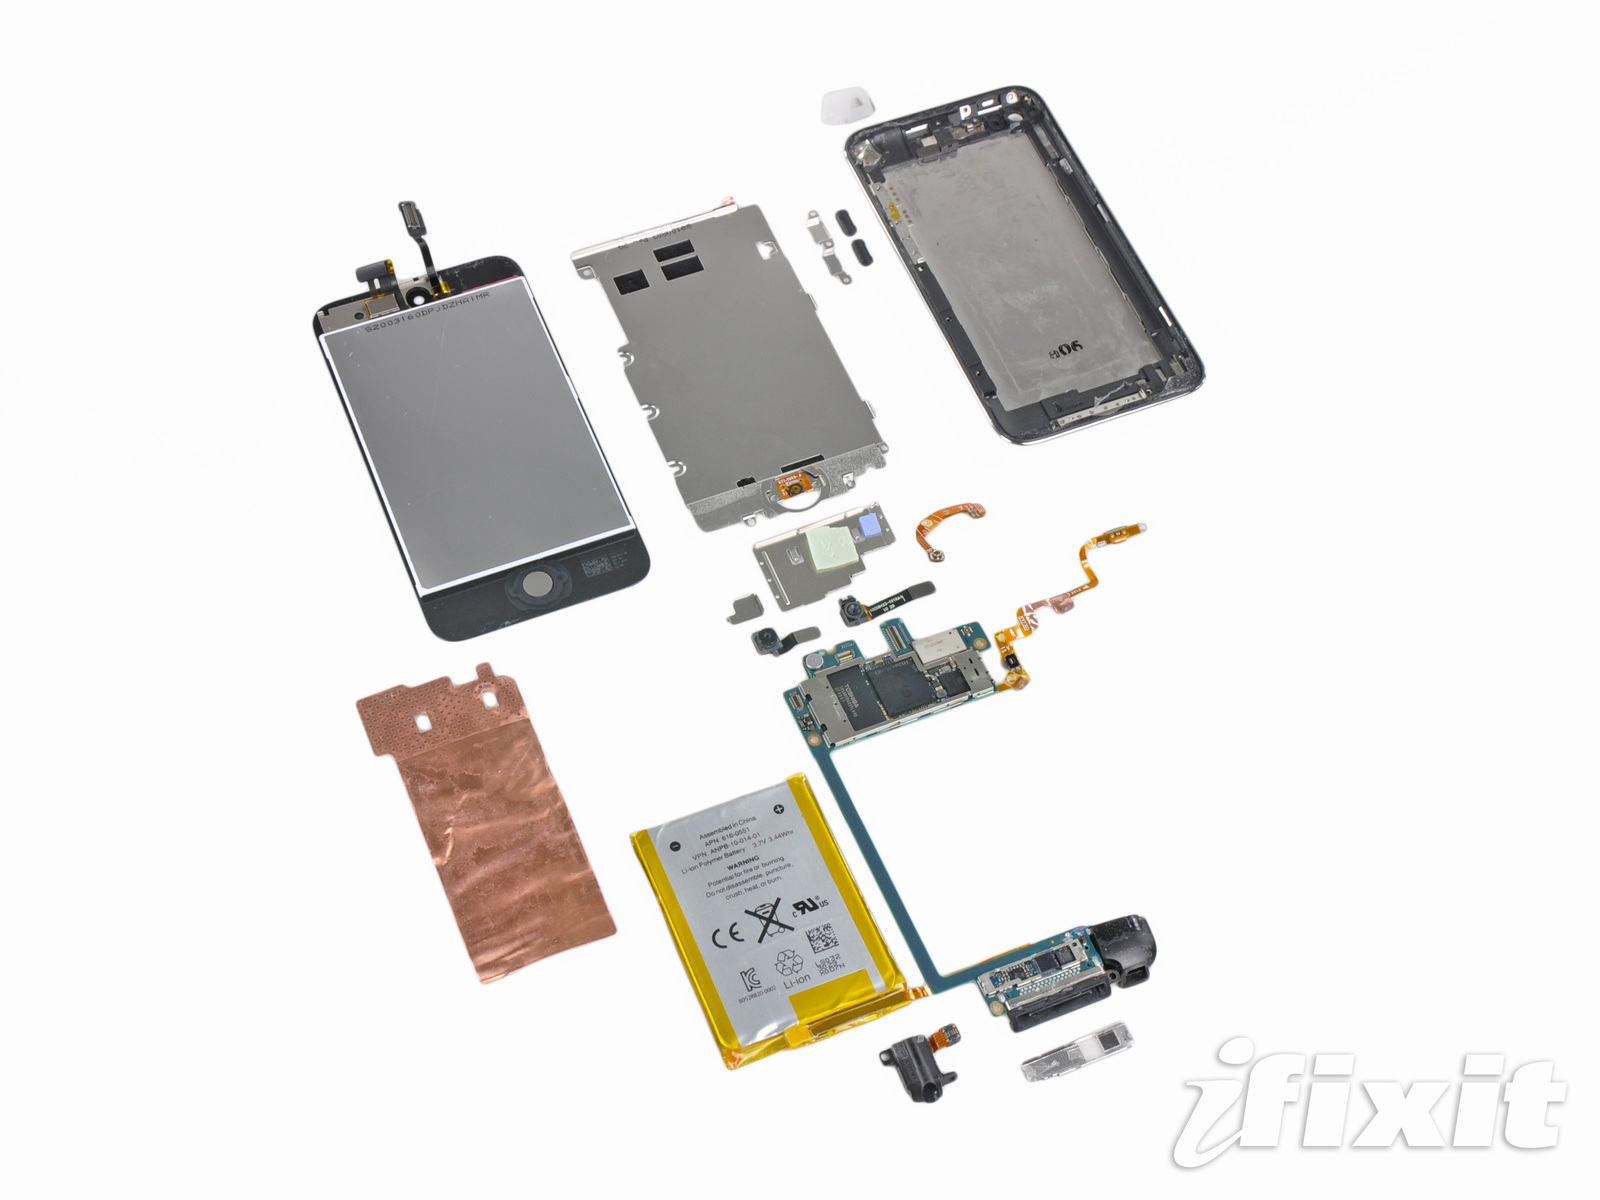 iPod touch 4G desmontado; iFixit